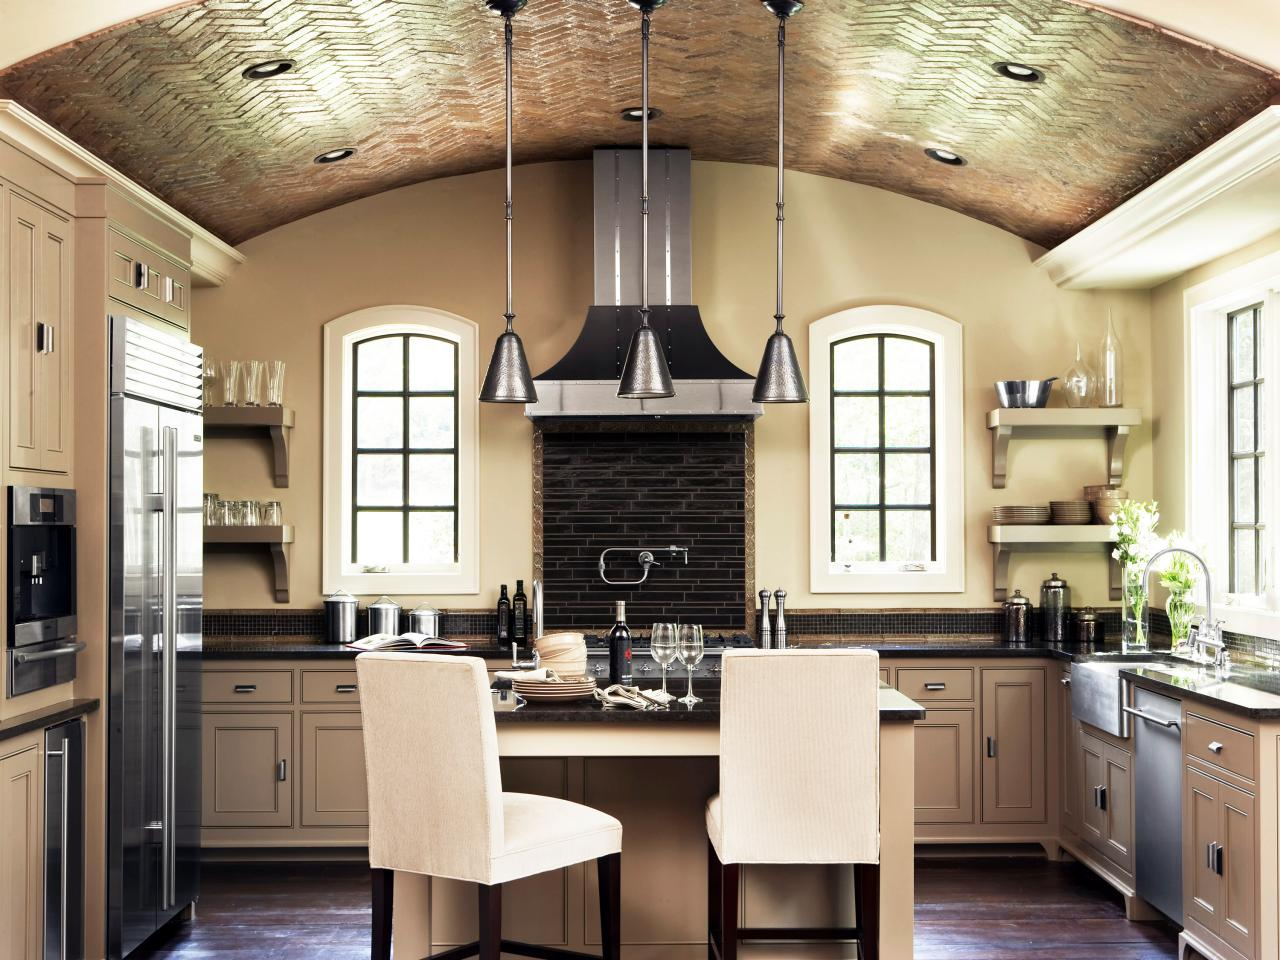 Top Kitchen Design Styles: Pictures, Tips, Ideas and Options | HGTV